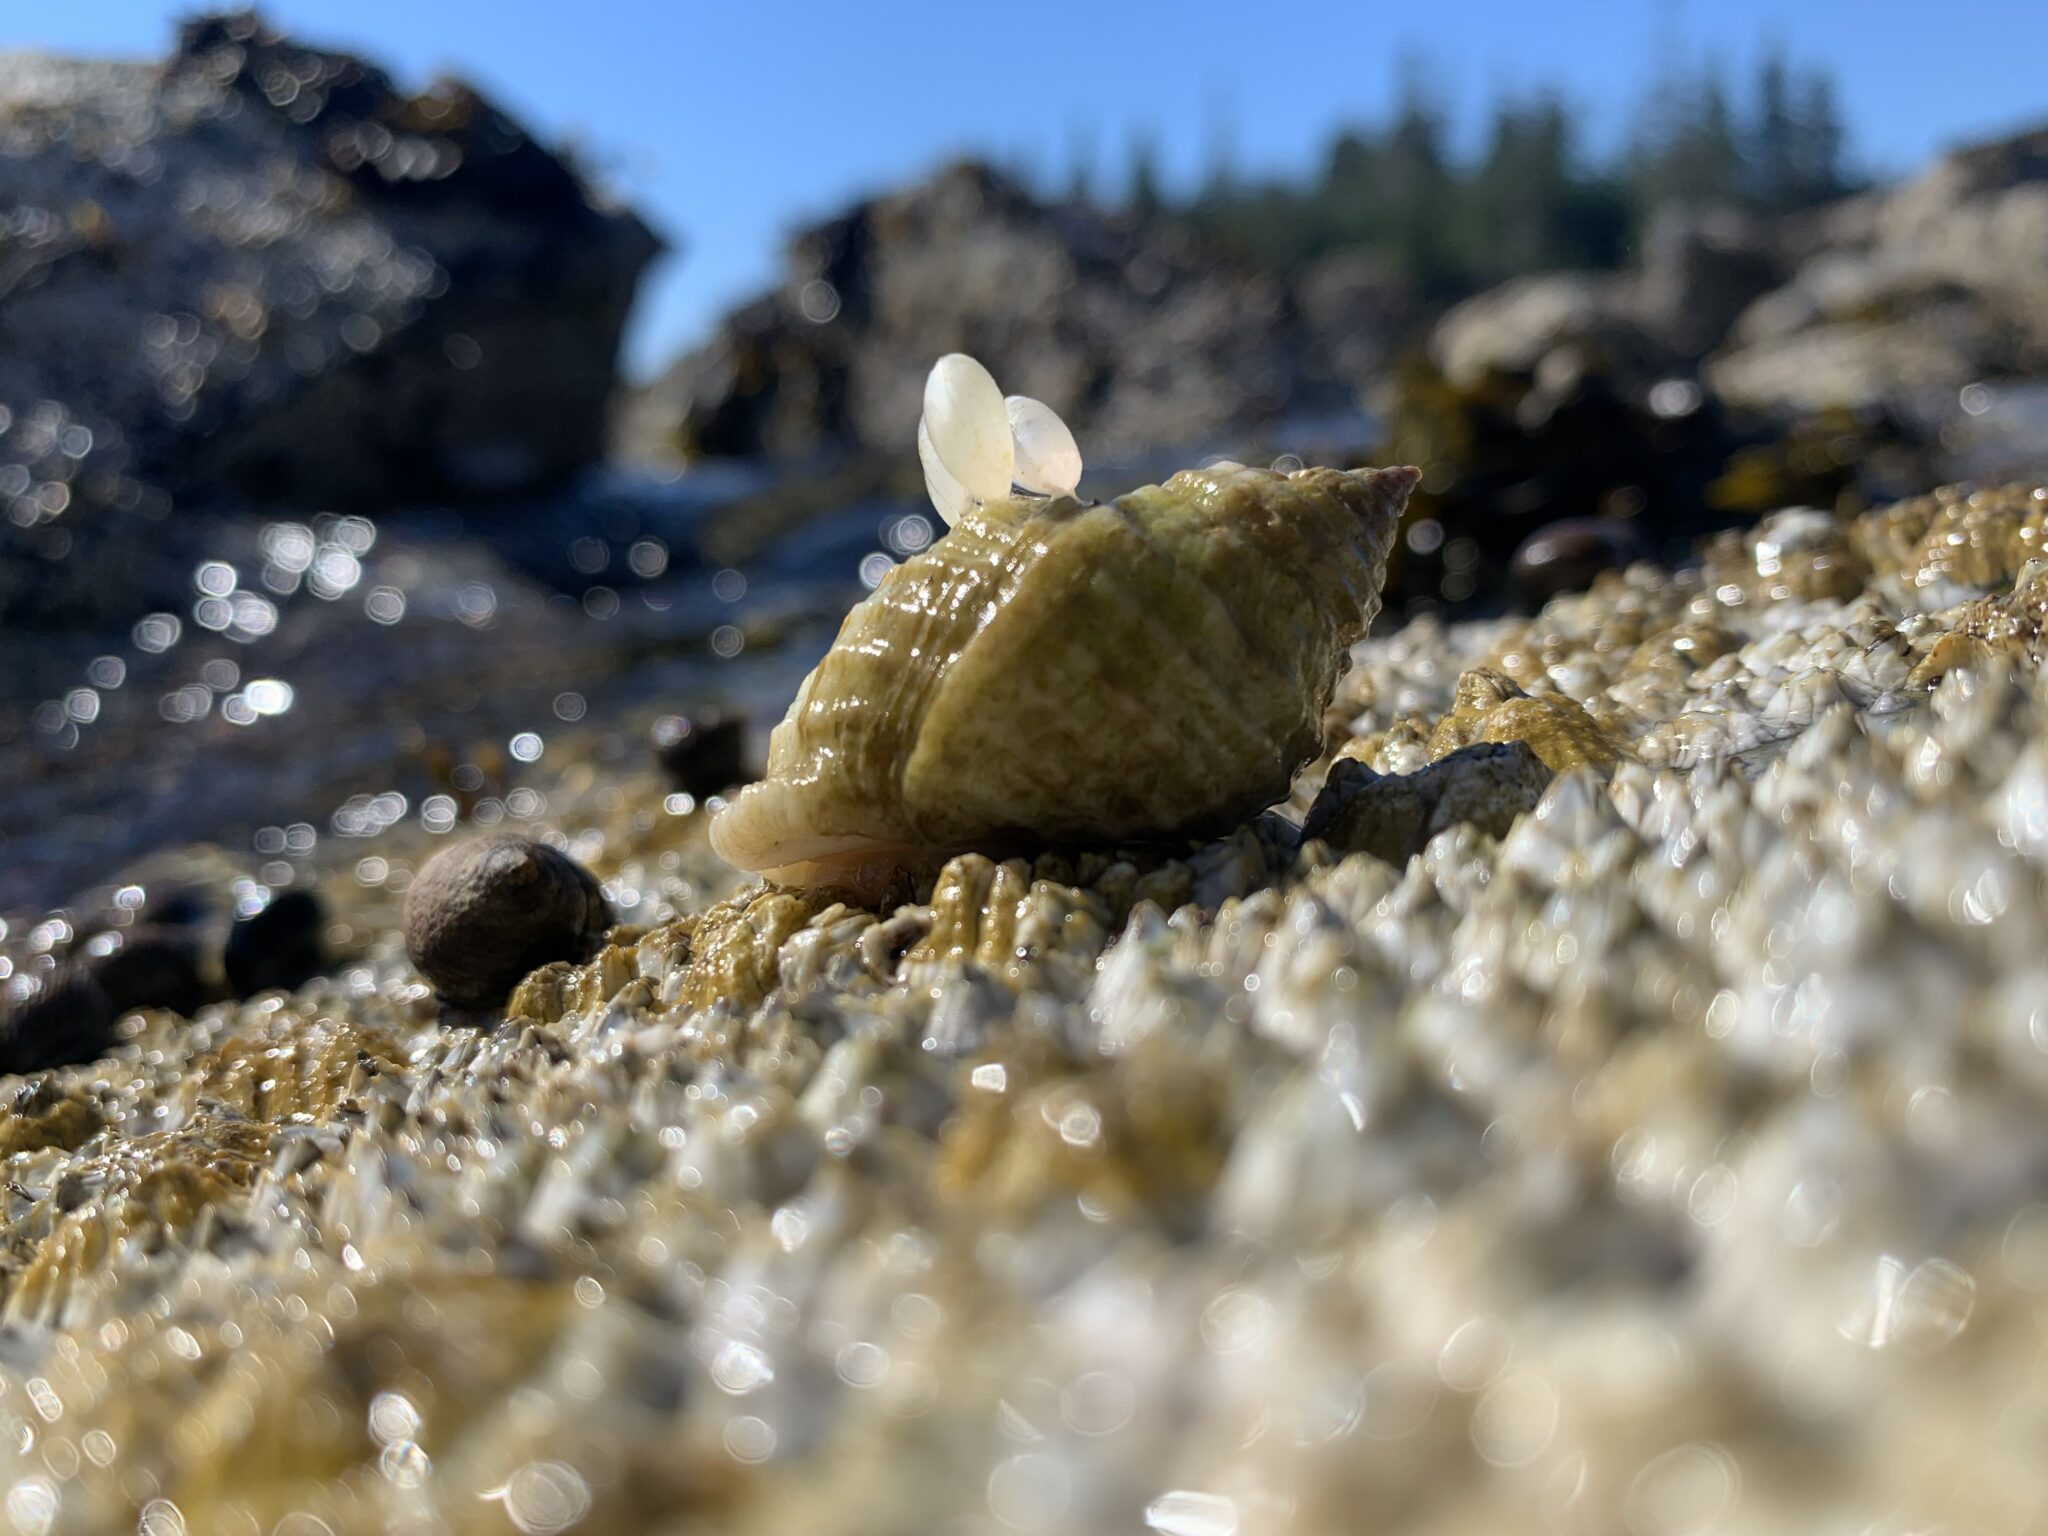 Close-up of a dog whelk shell with egg cases attached.